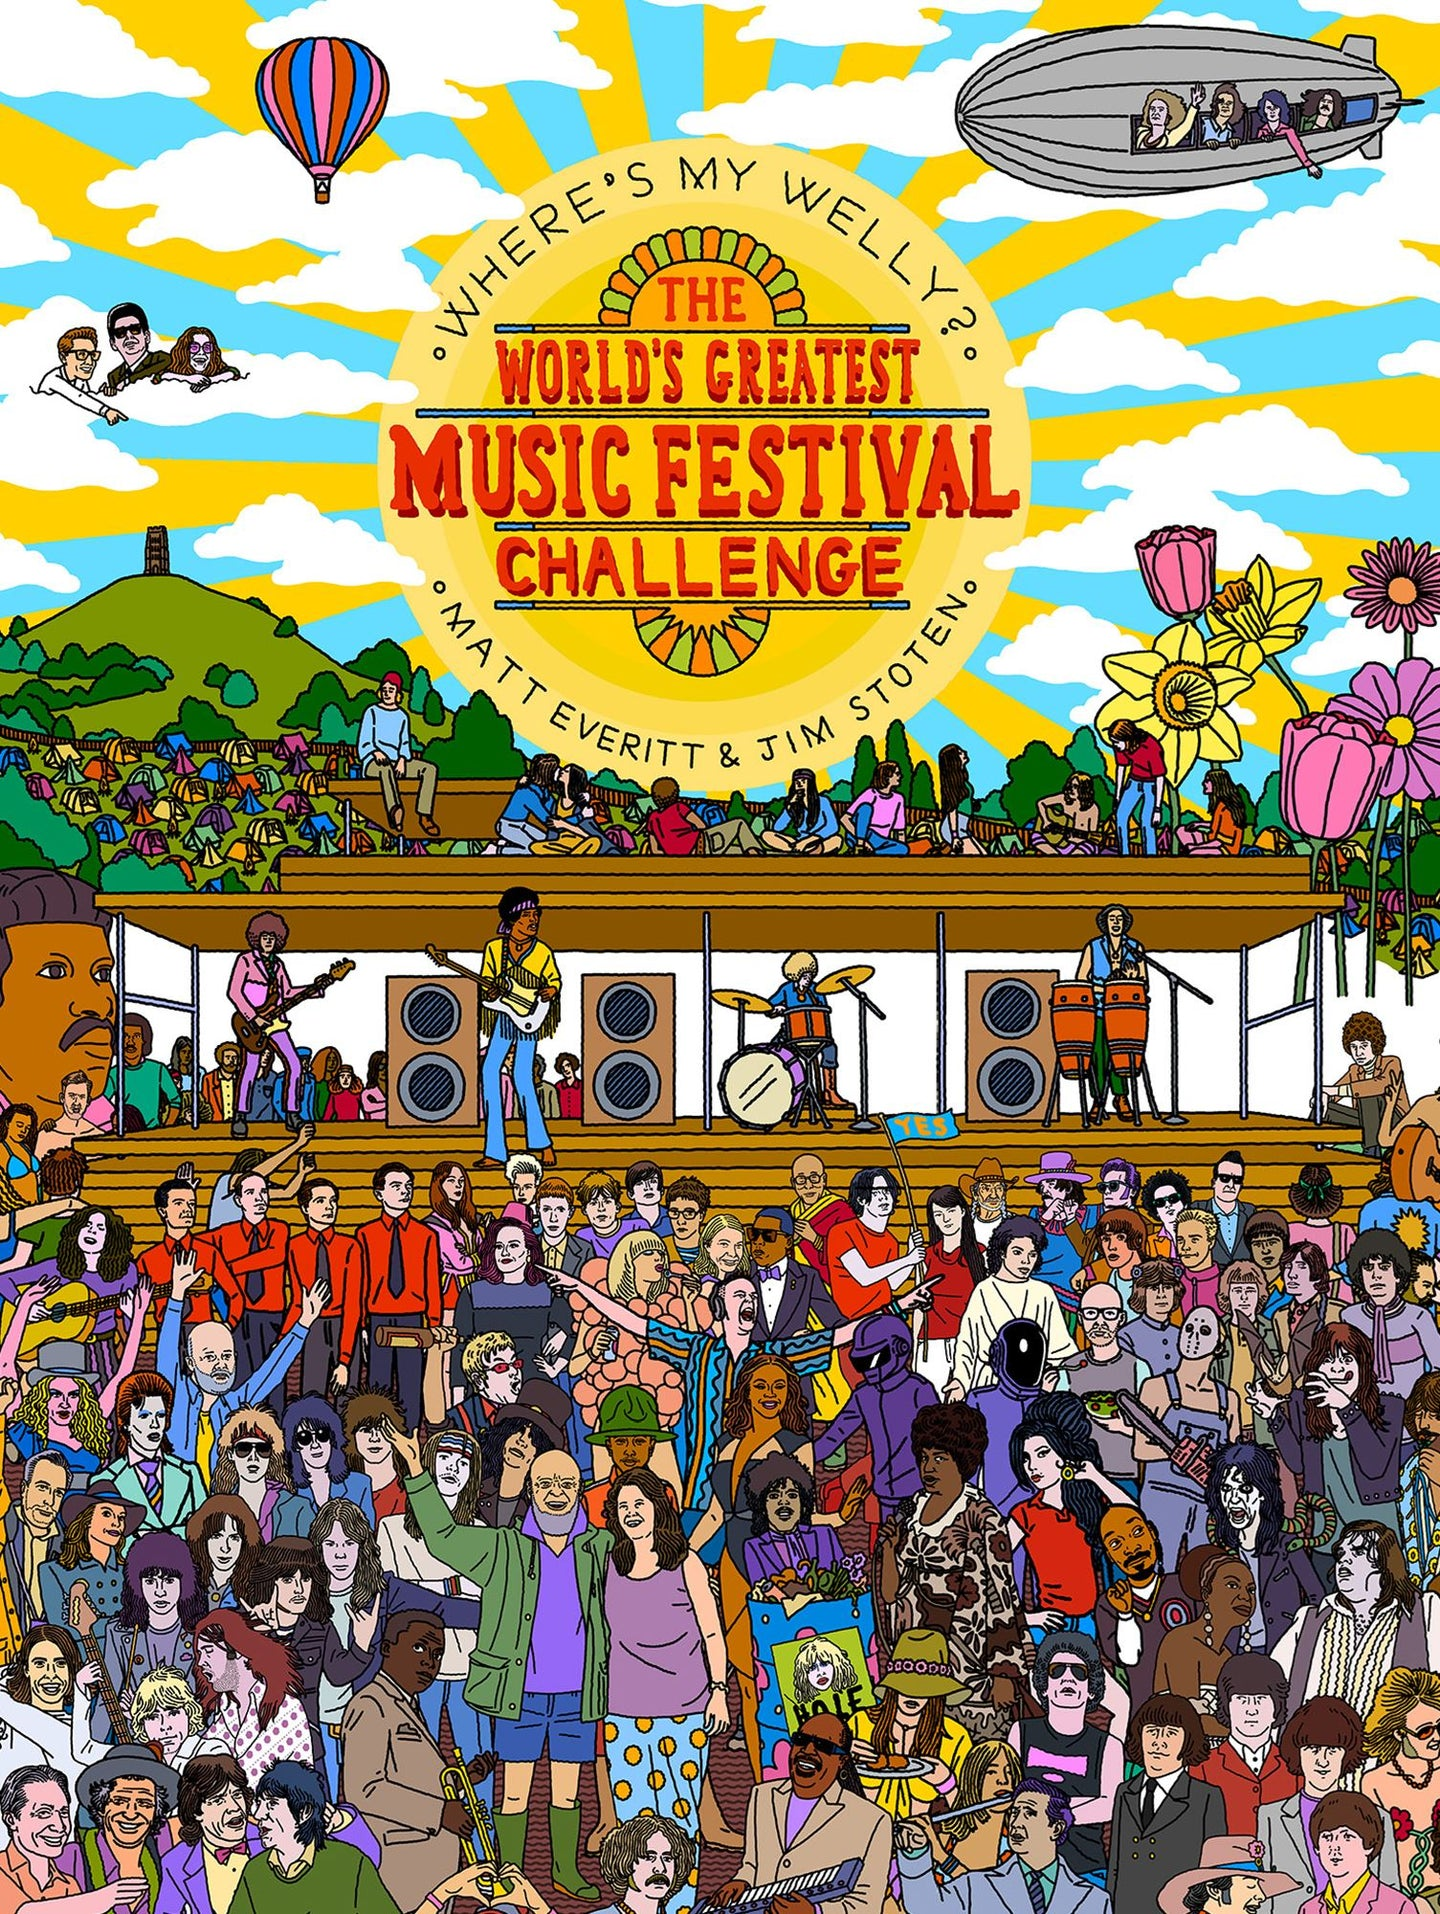 Where's My Welly: The Greatest Music Festival Challenge